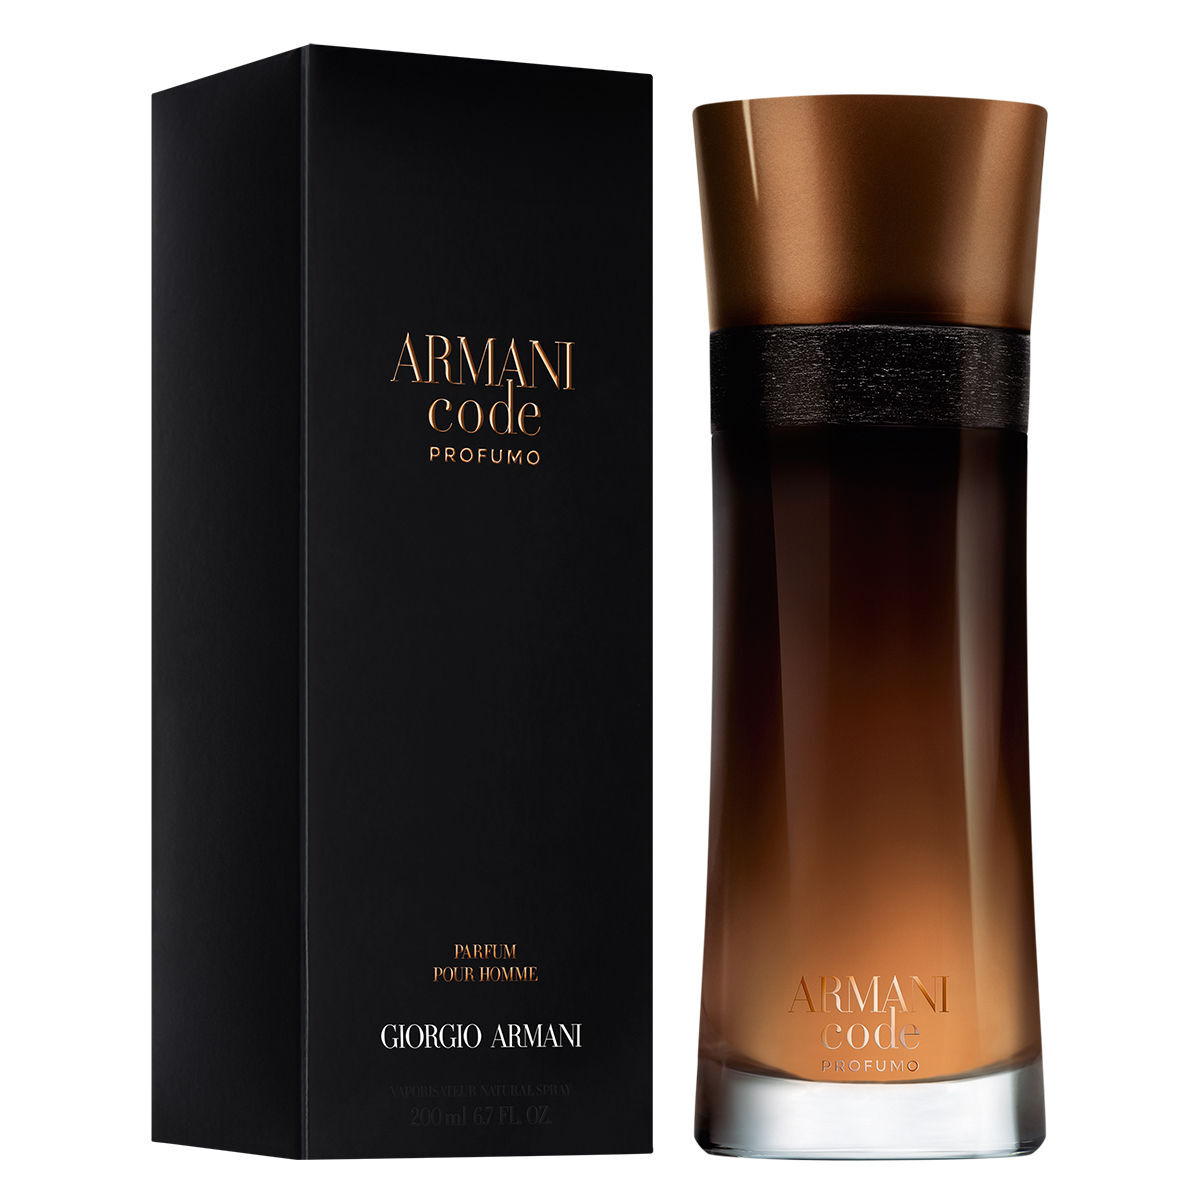 giorgio armani code homme profumo eau de parfum. Black Bedroom Furniture Sets. Home Design Ideas